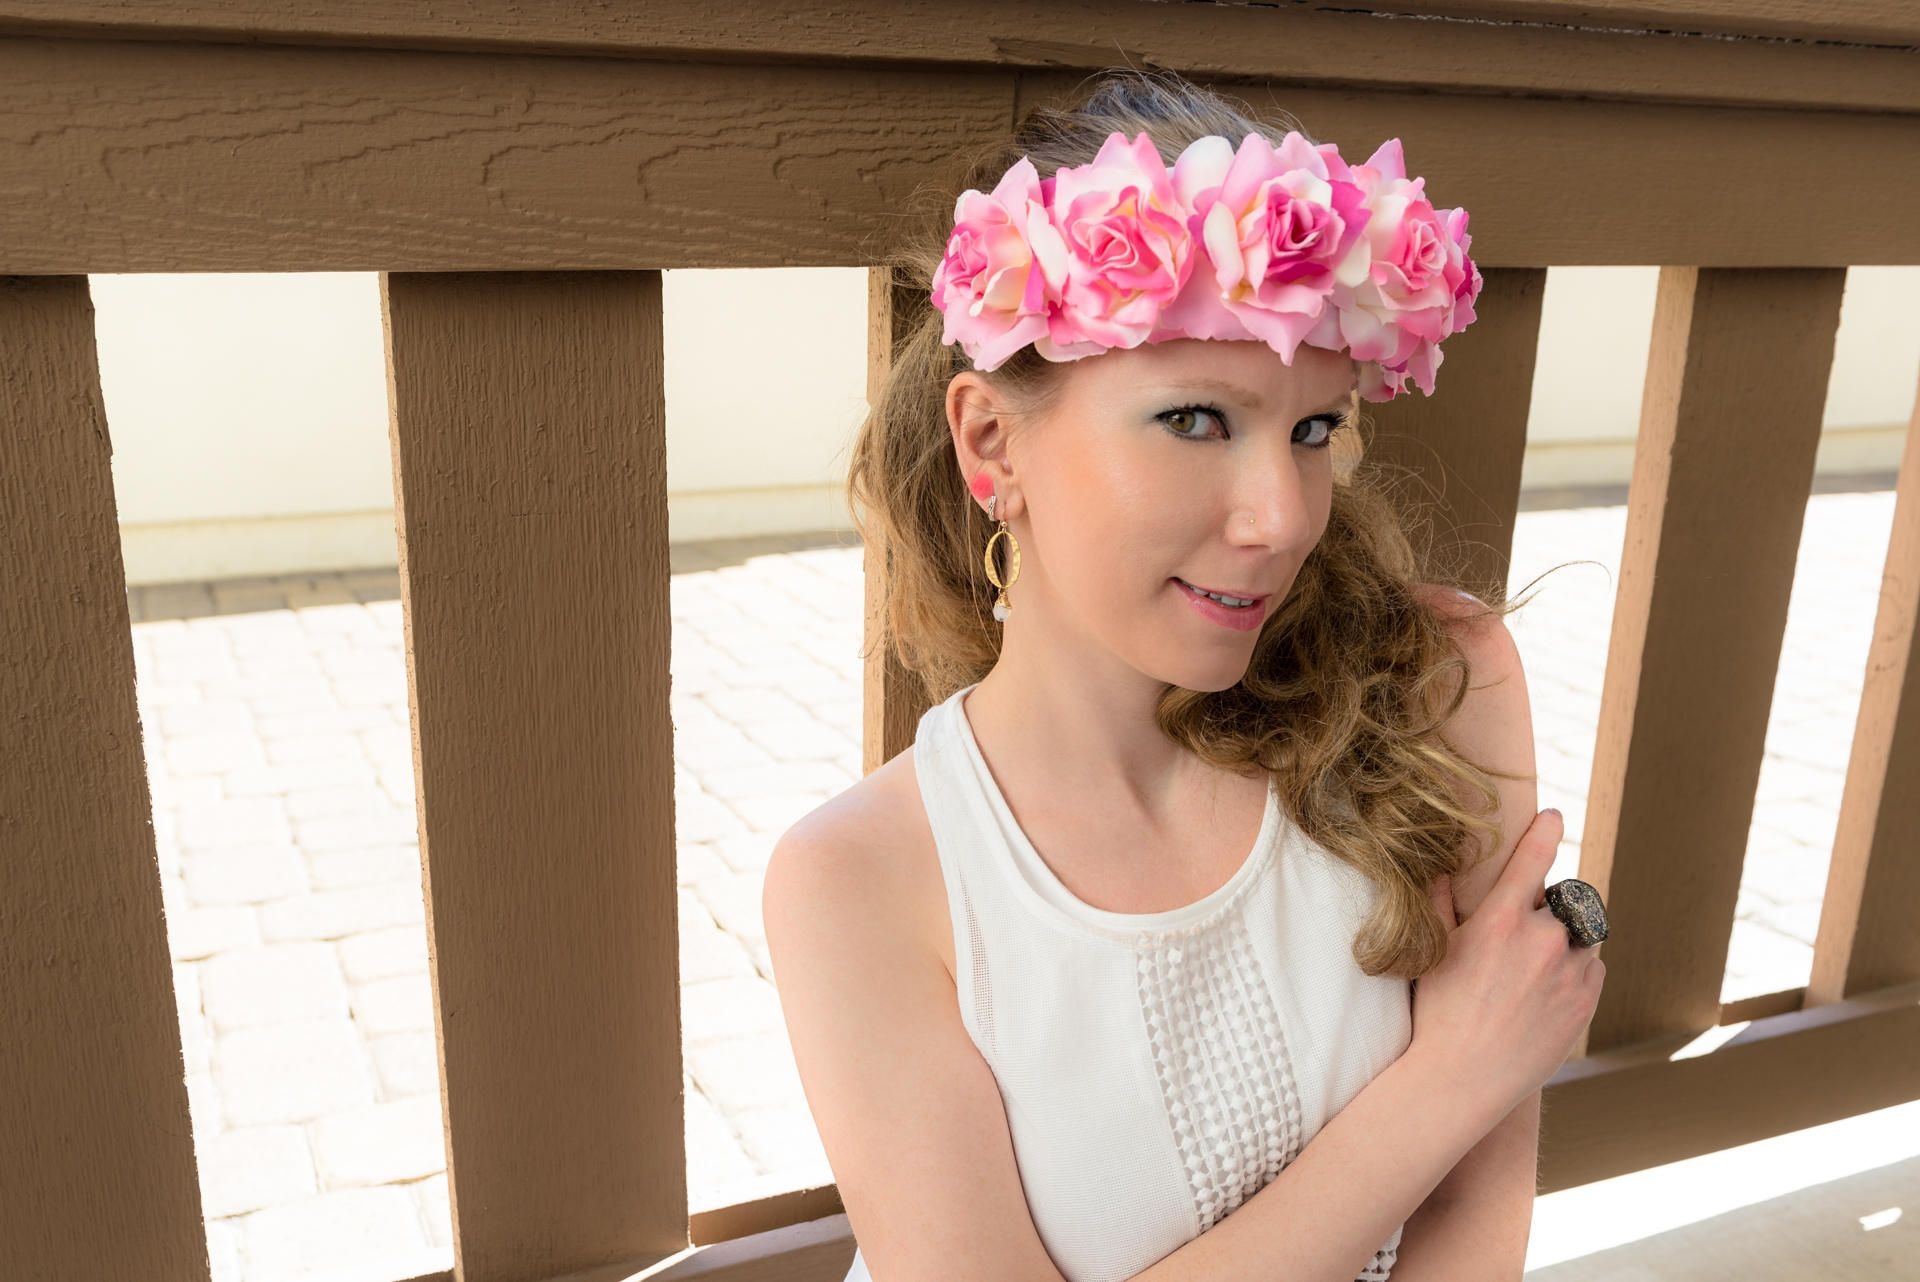 Pink white cream rose flower crown flower headband festival pink white cream rose flower crown flower headband festival headband hippie headband izmirmasajfo